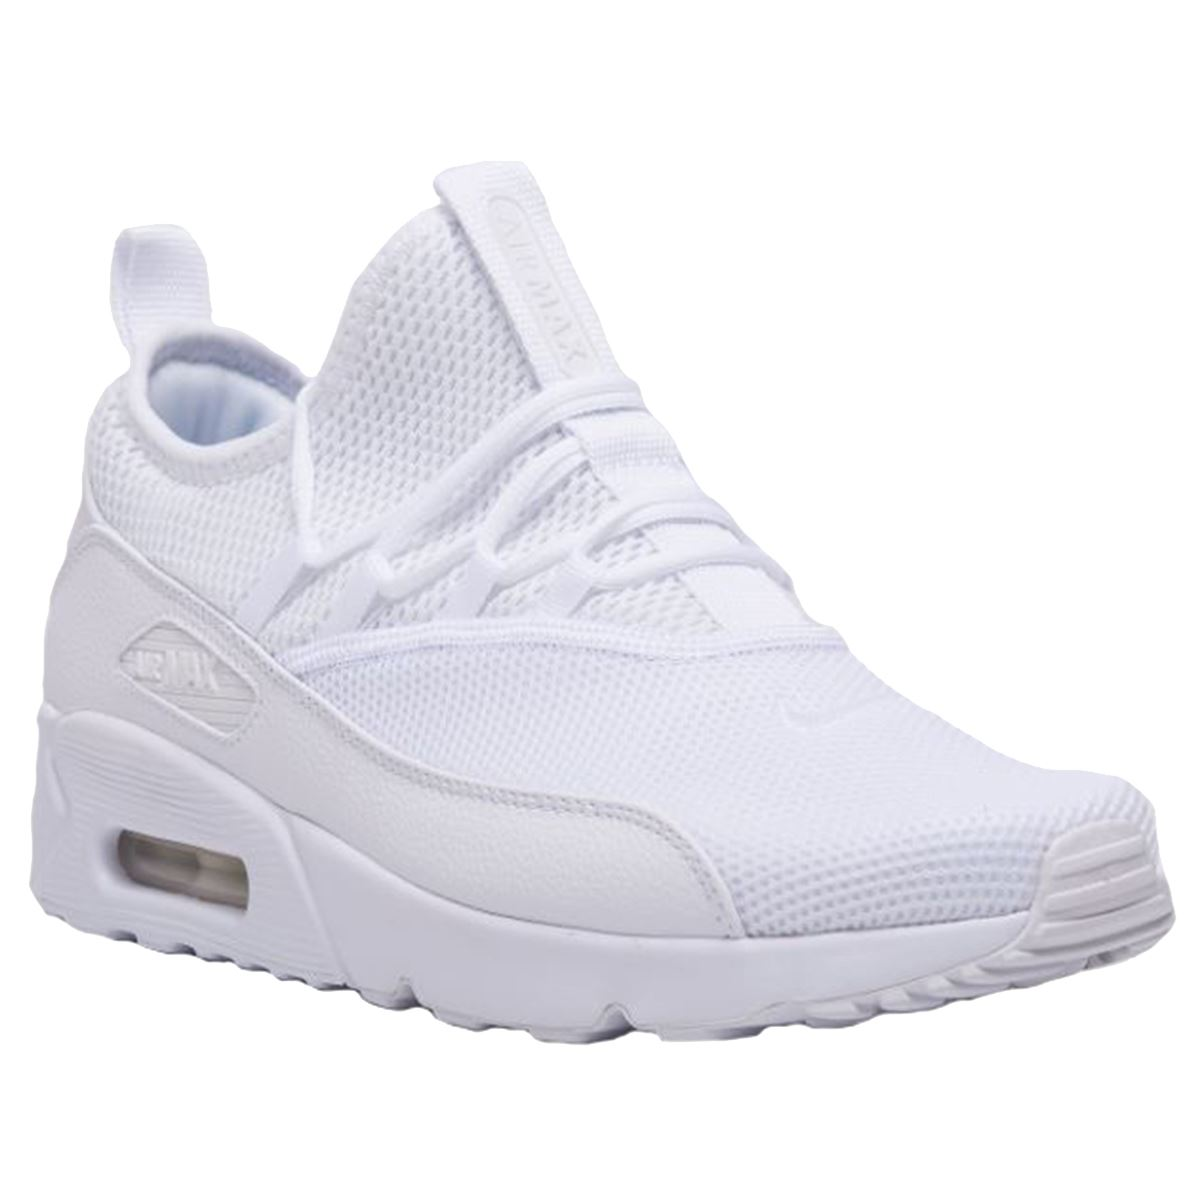 Details about Nike Air Max 90 EZ White Mens Mesh Lace up Low top Sneakers Trainers